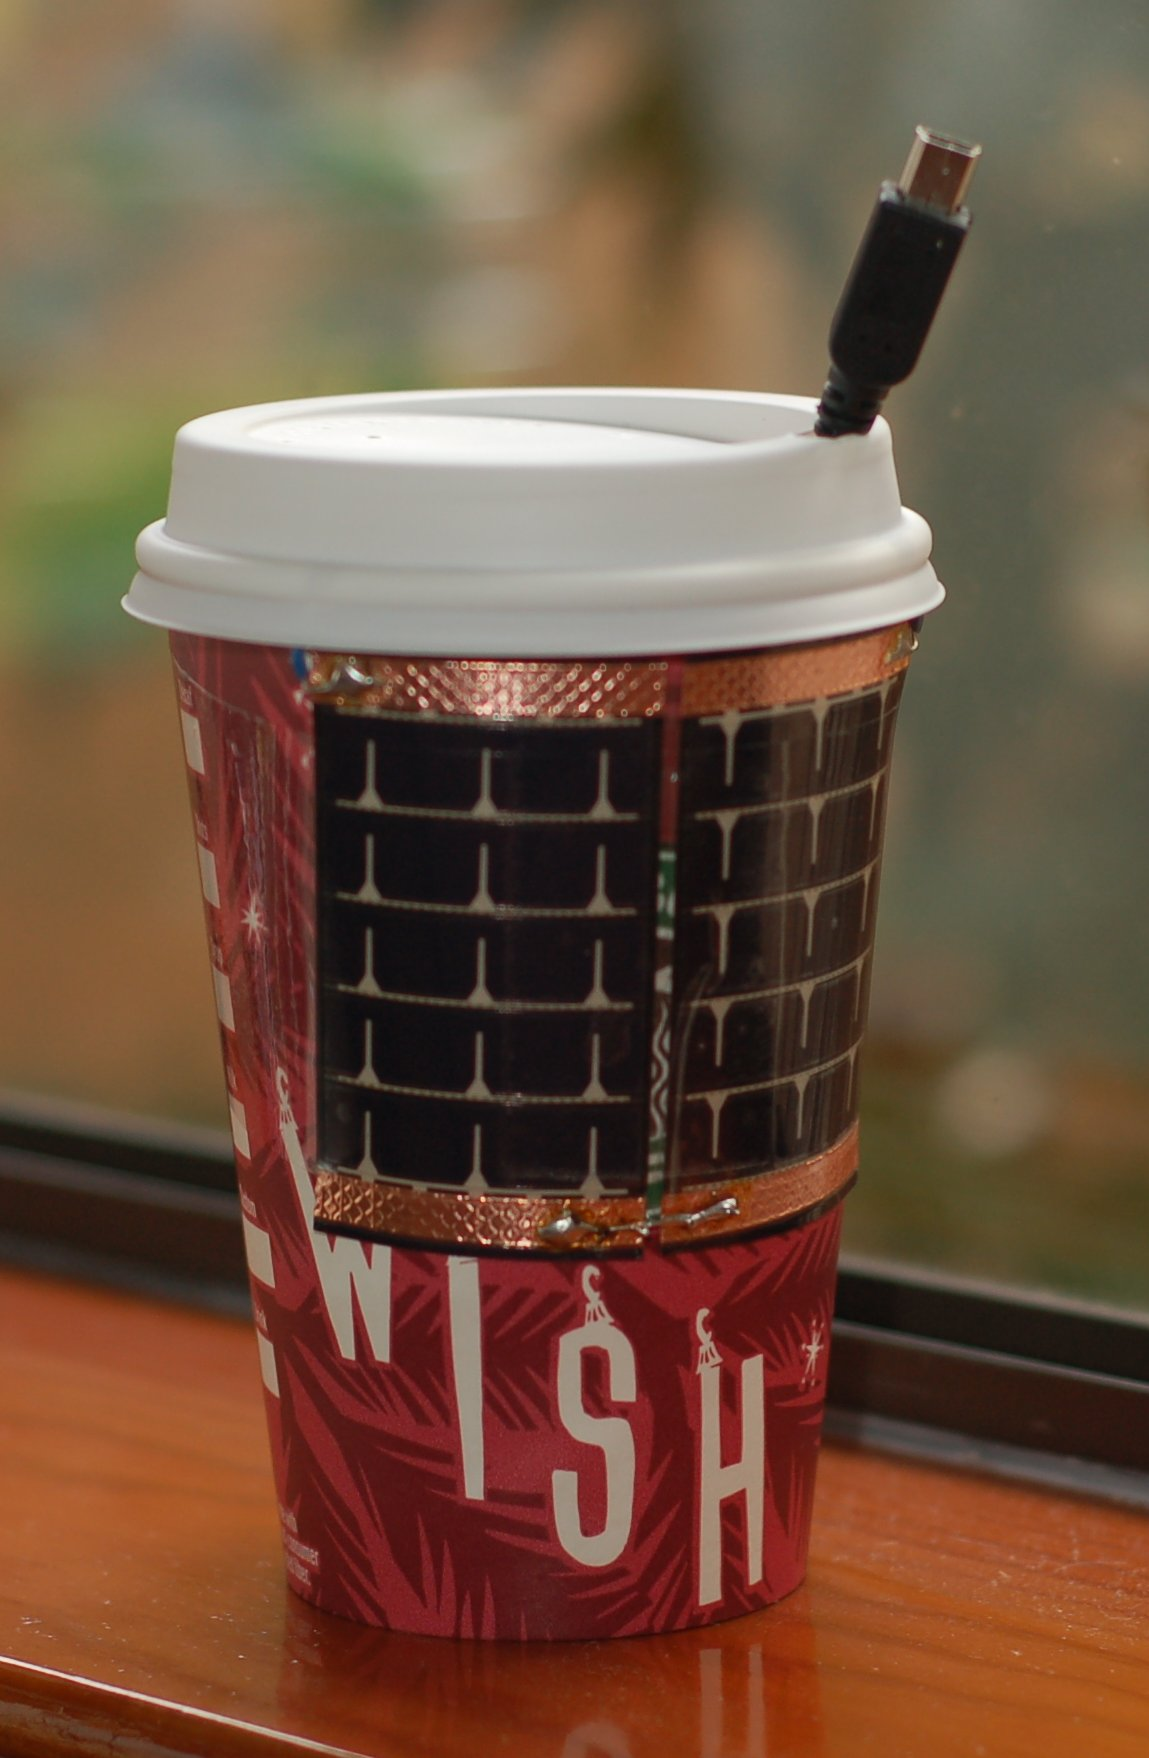 Mr. Buzz, the USB Solar Charger in a Cup